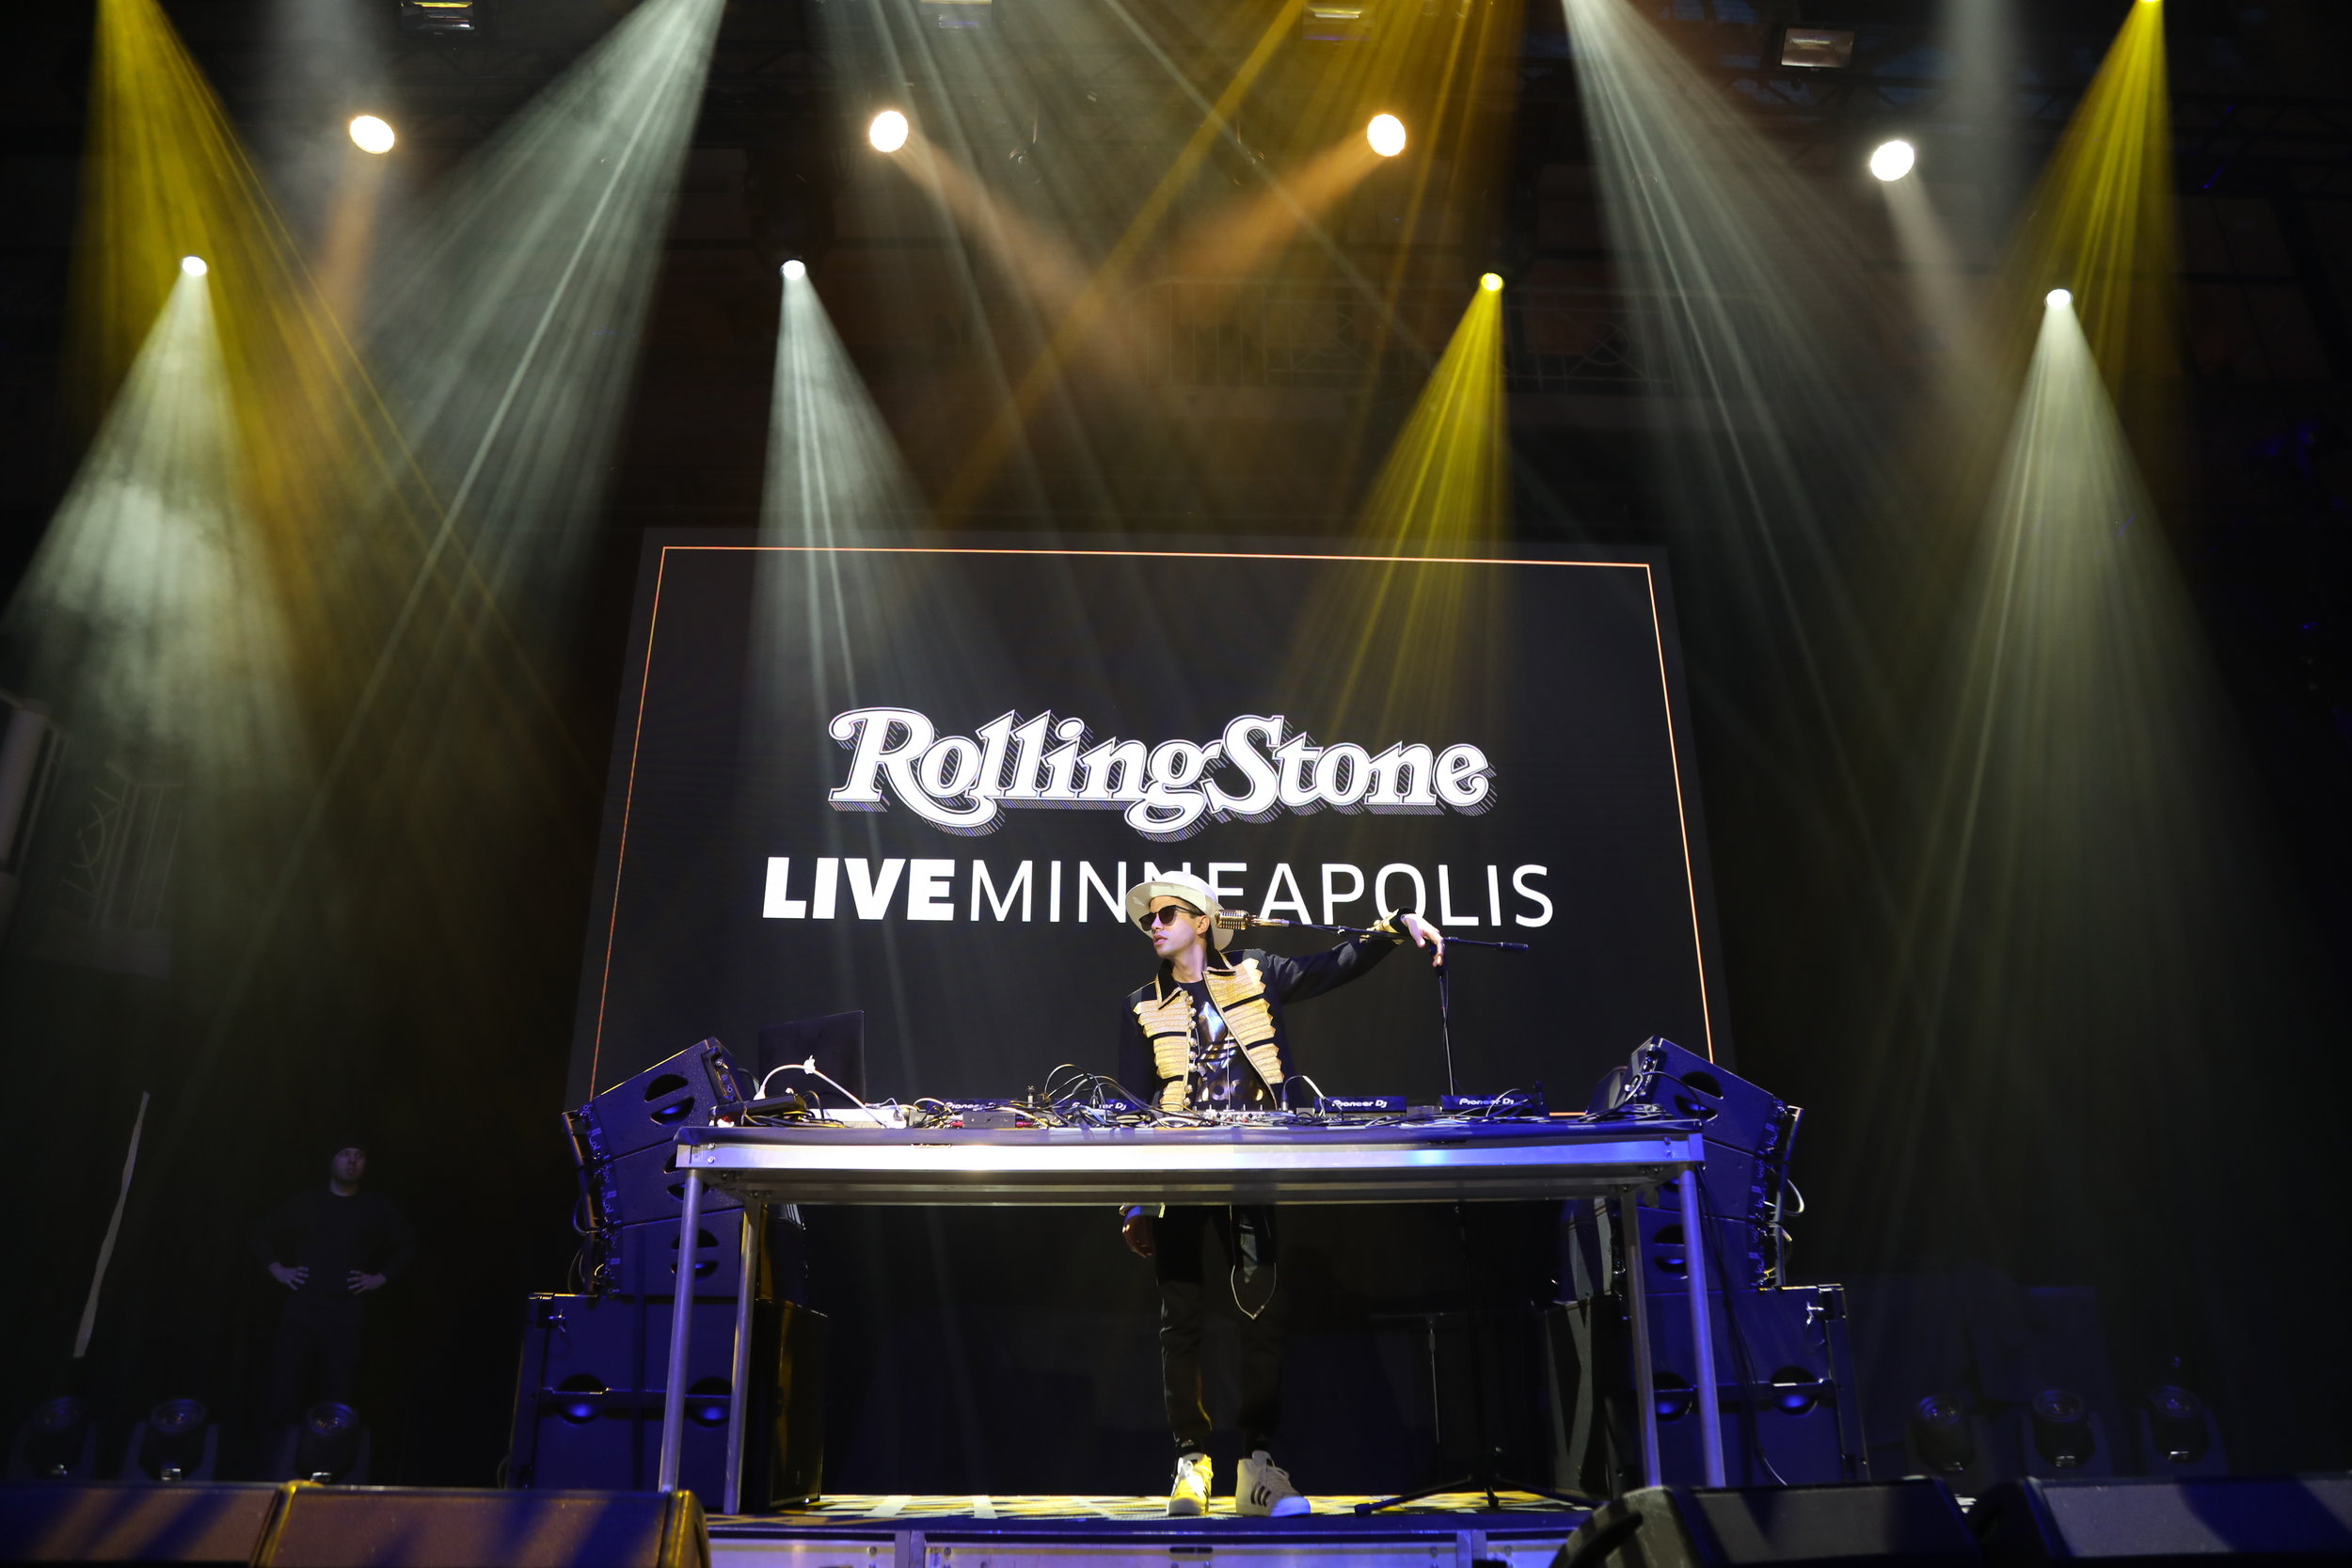 DJ Cassidy performing at Rolling Stove LIVE: Minneapolis